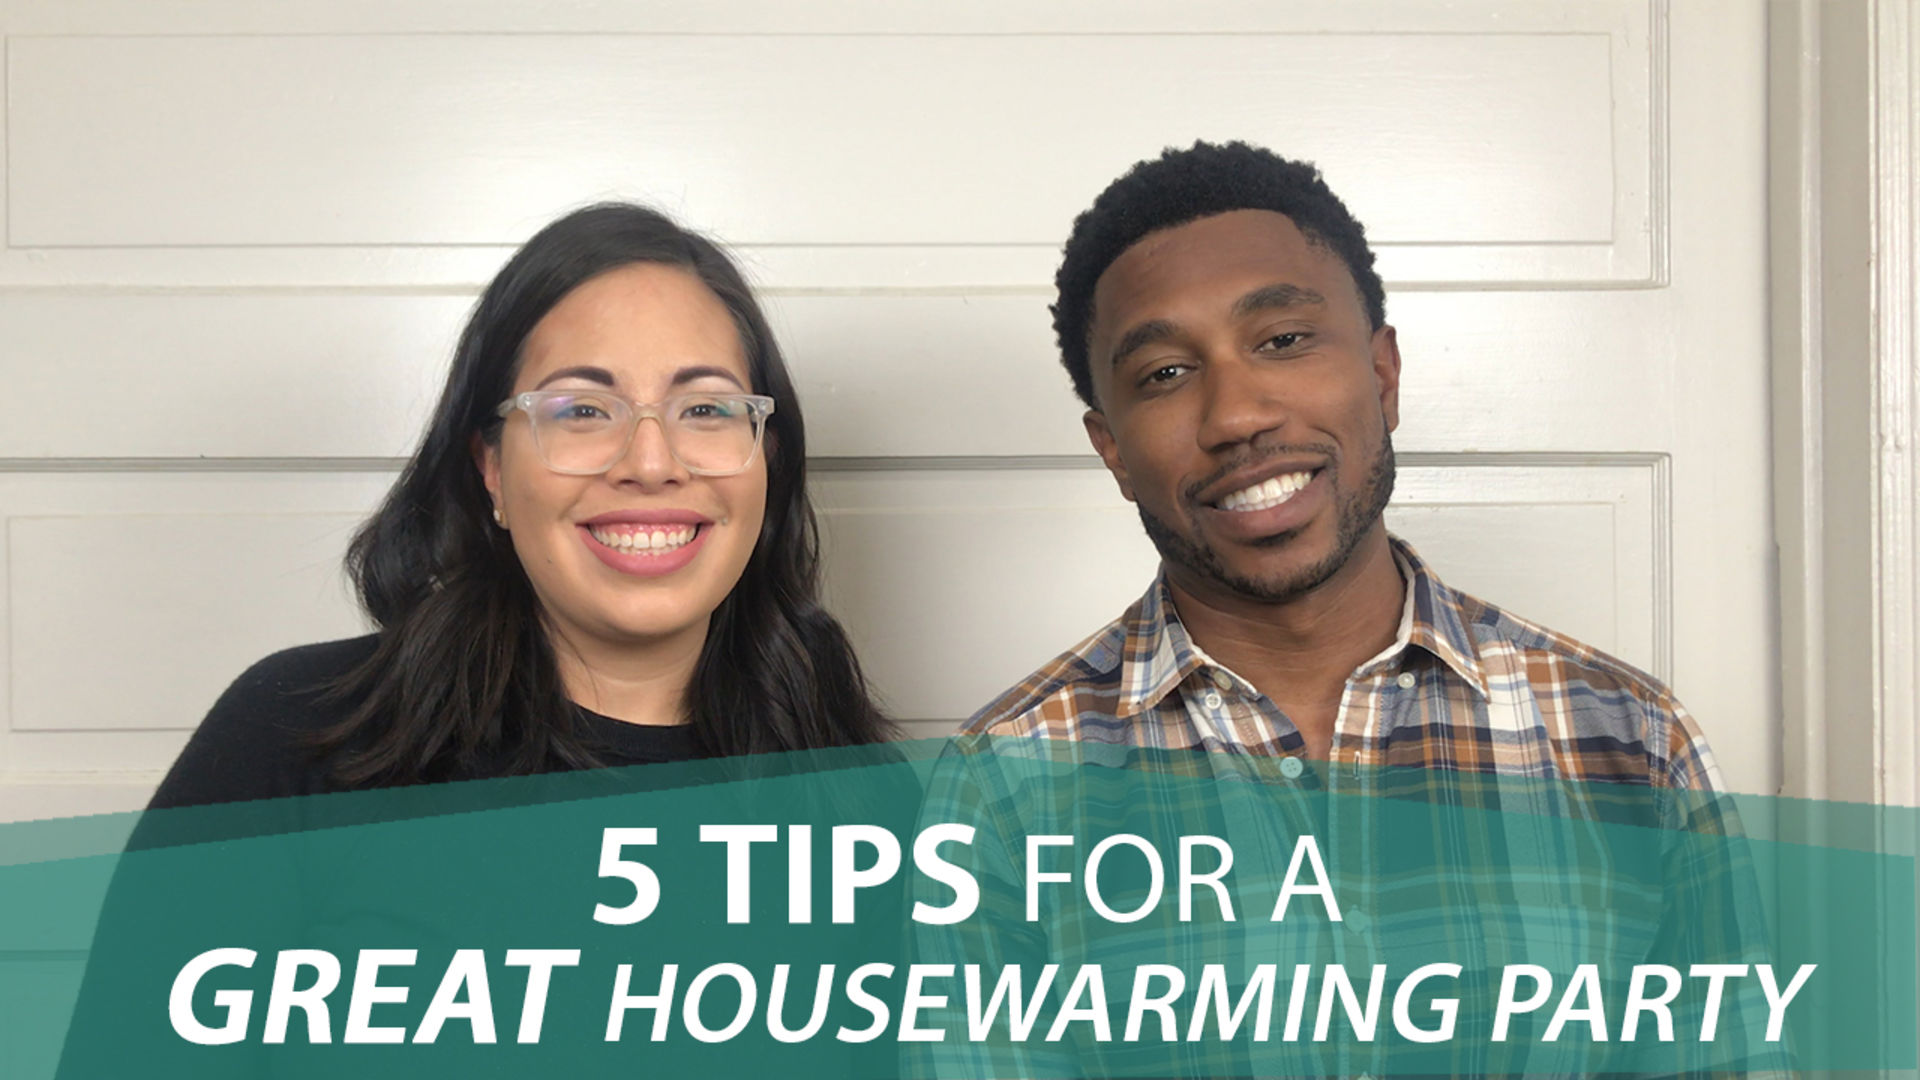 Raise the Roof With These 5 Housewarming Party Tips